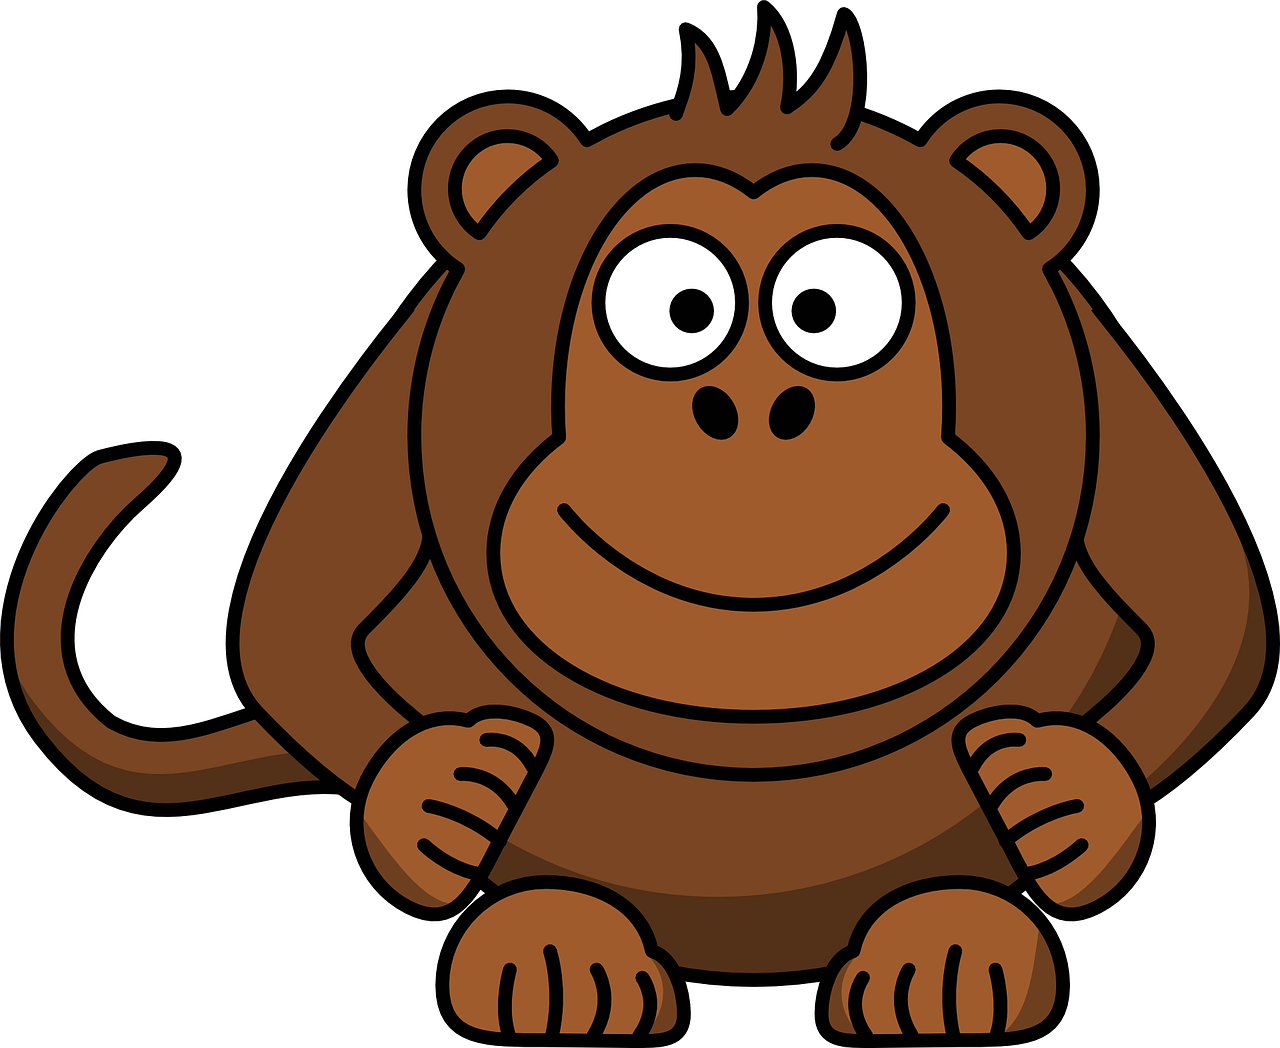 Paw clipart monkeys. Monkey costume for dogs